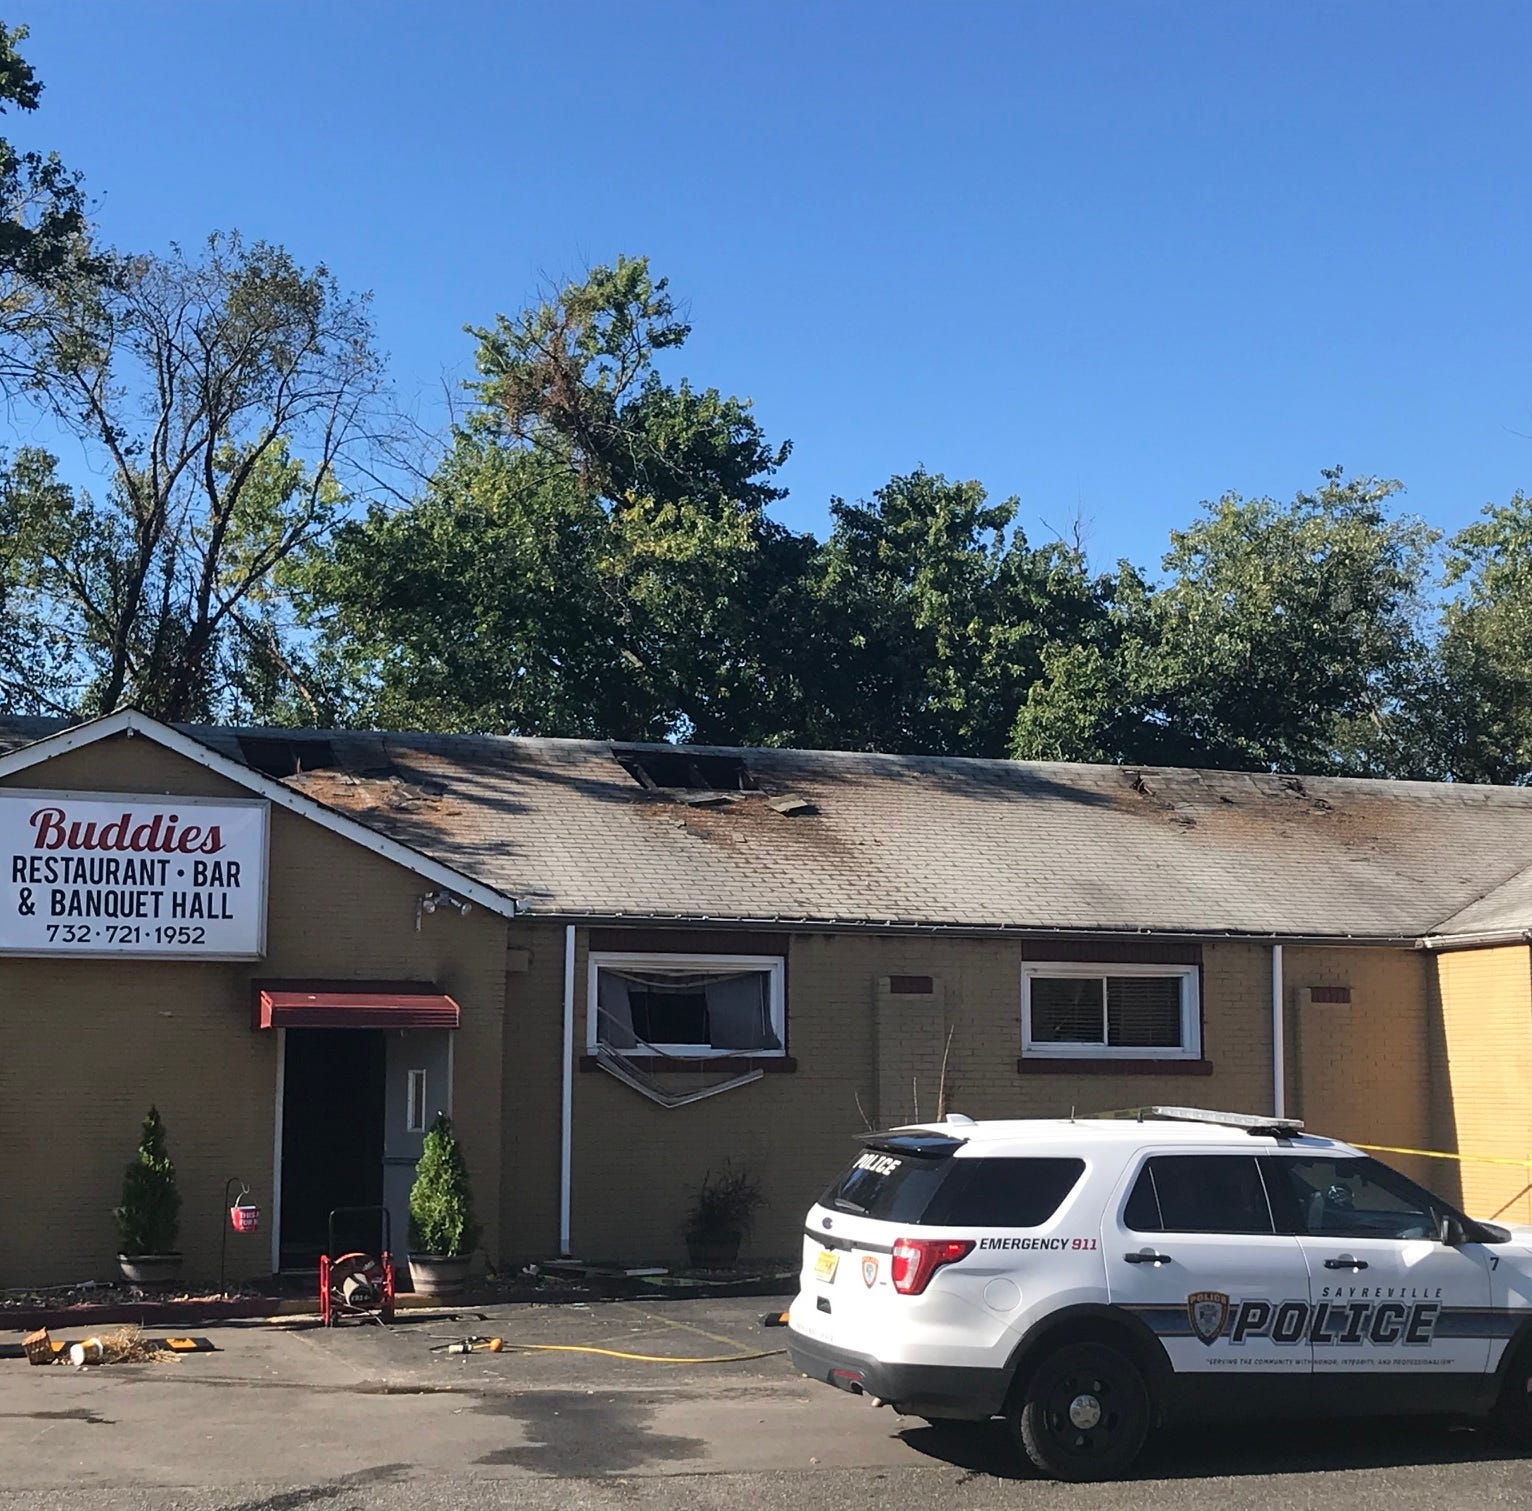 Fire damages Buddies Restaurant and Banquet Hall in Sayreville